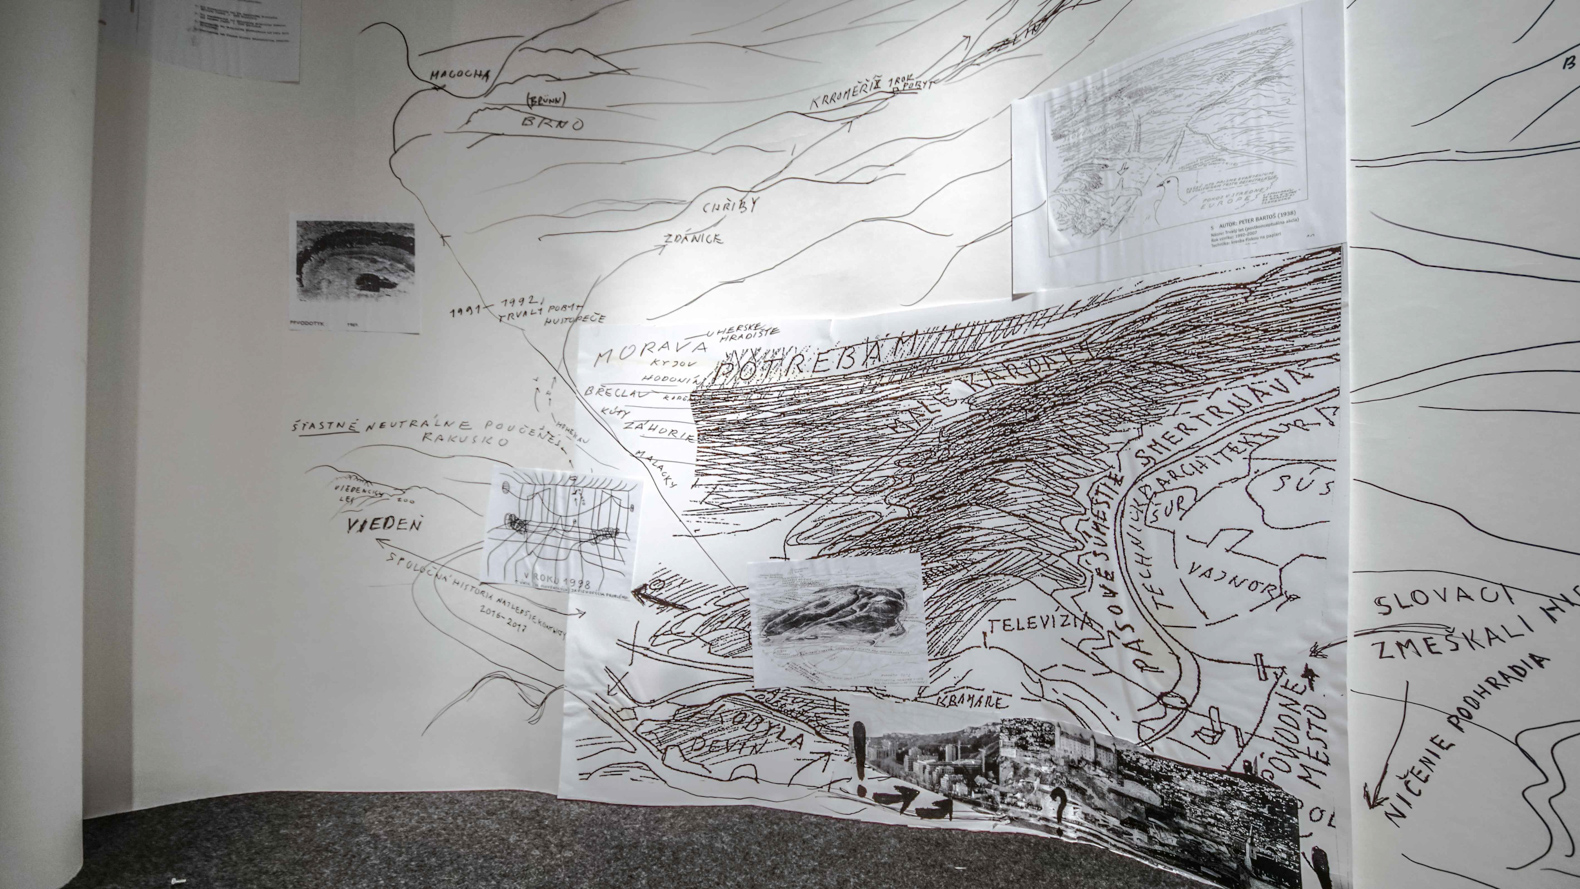 Peter Bartoš, Drawing the World, from the exhibition and event ' Sitting Together' at tranzit.sk, Slovakia, 2016